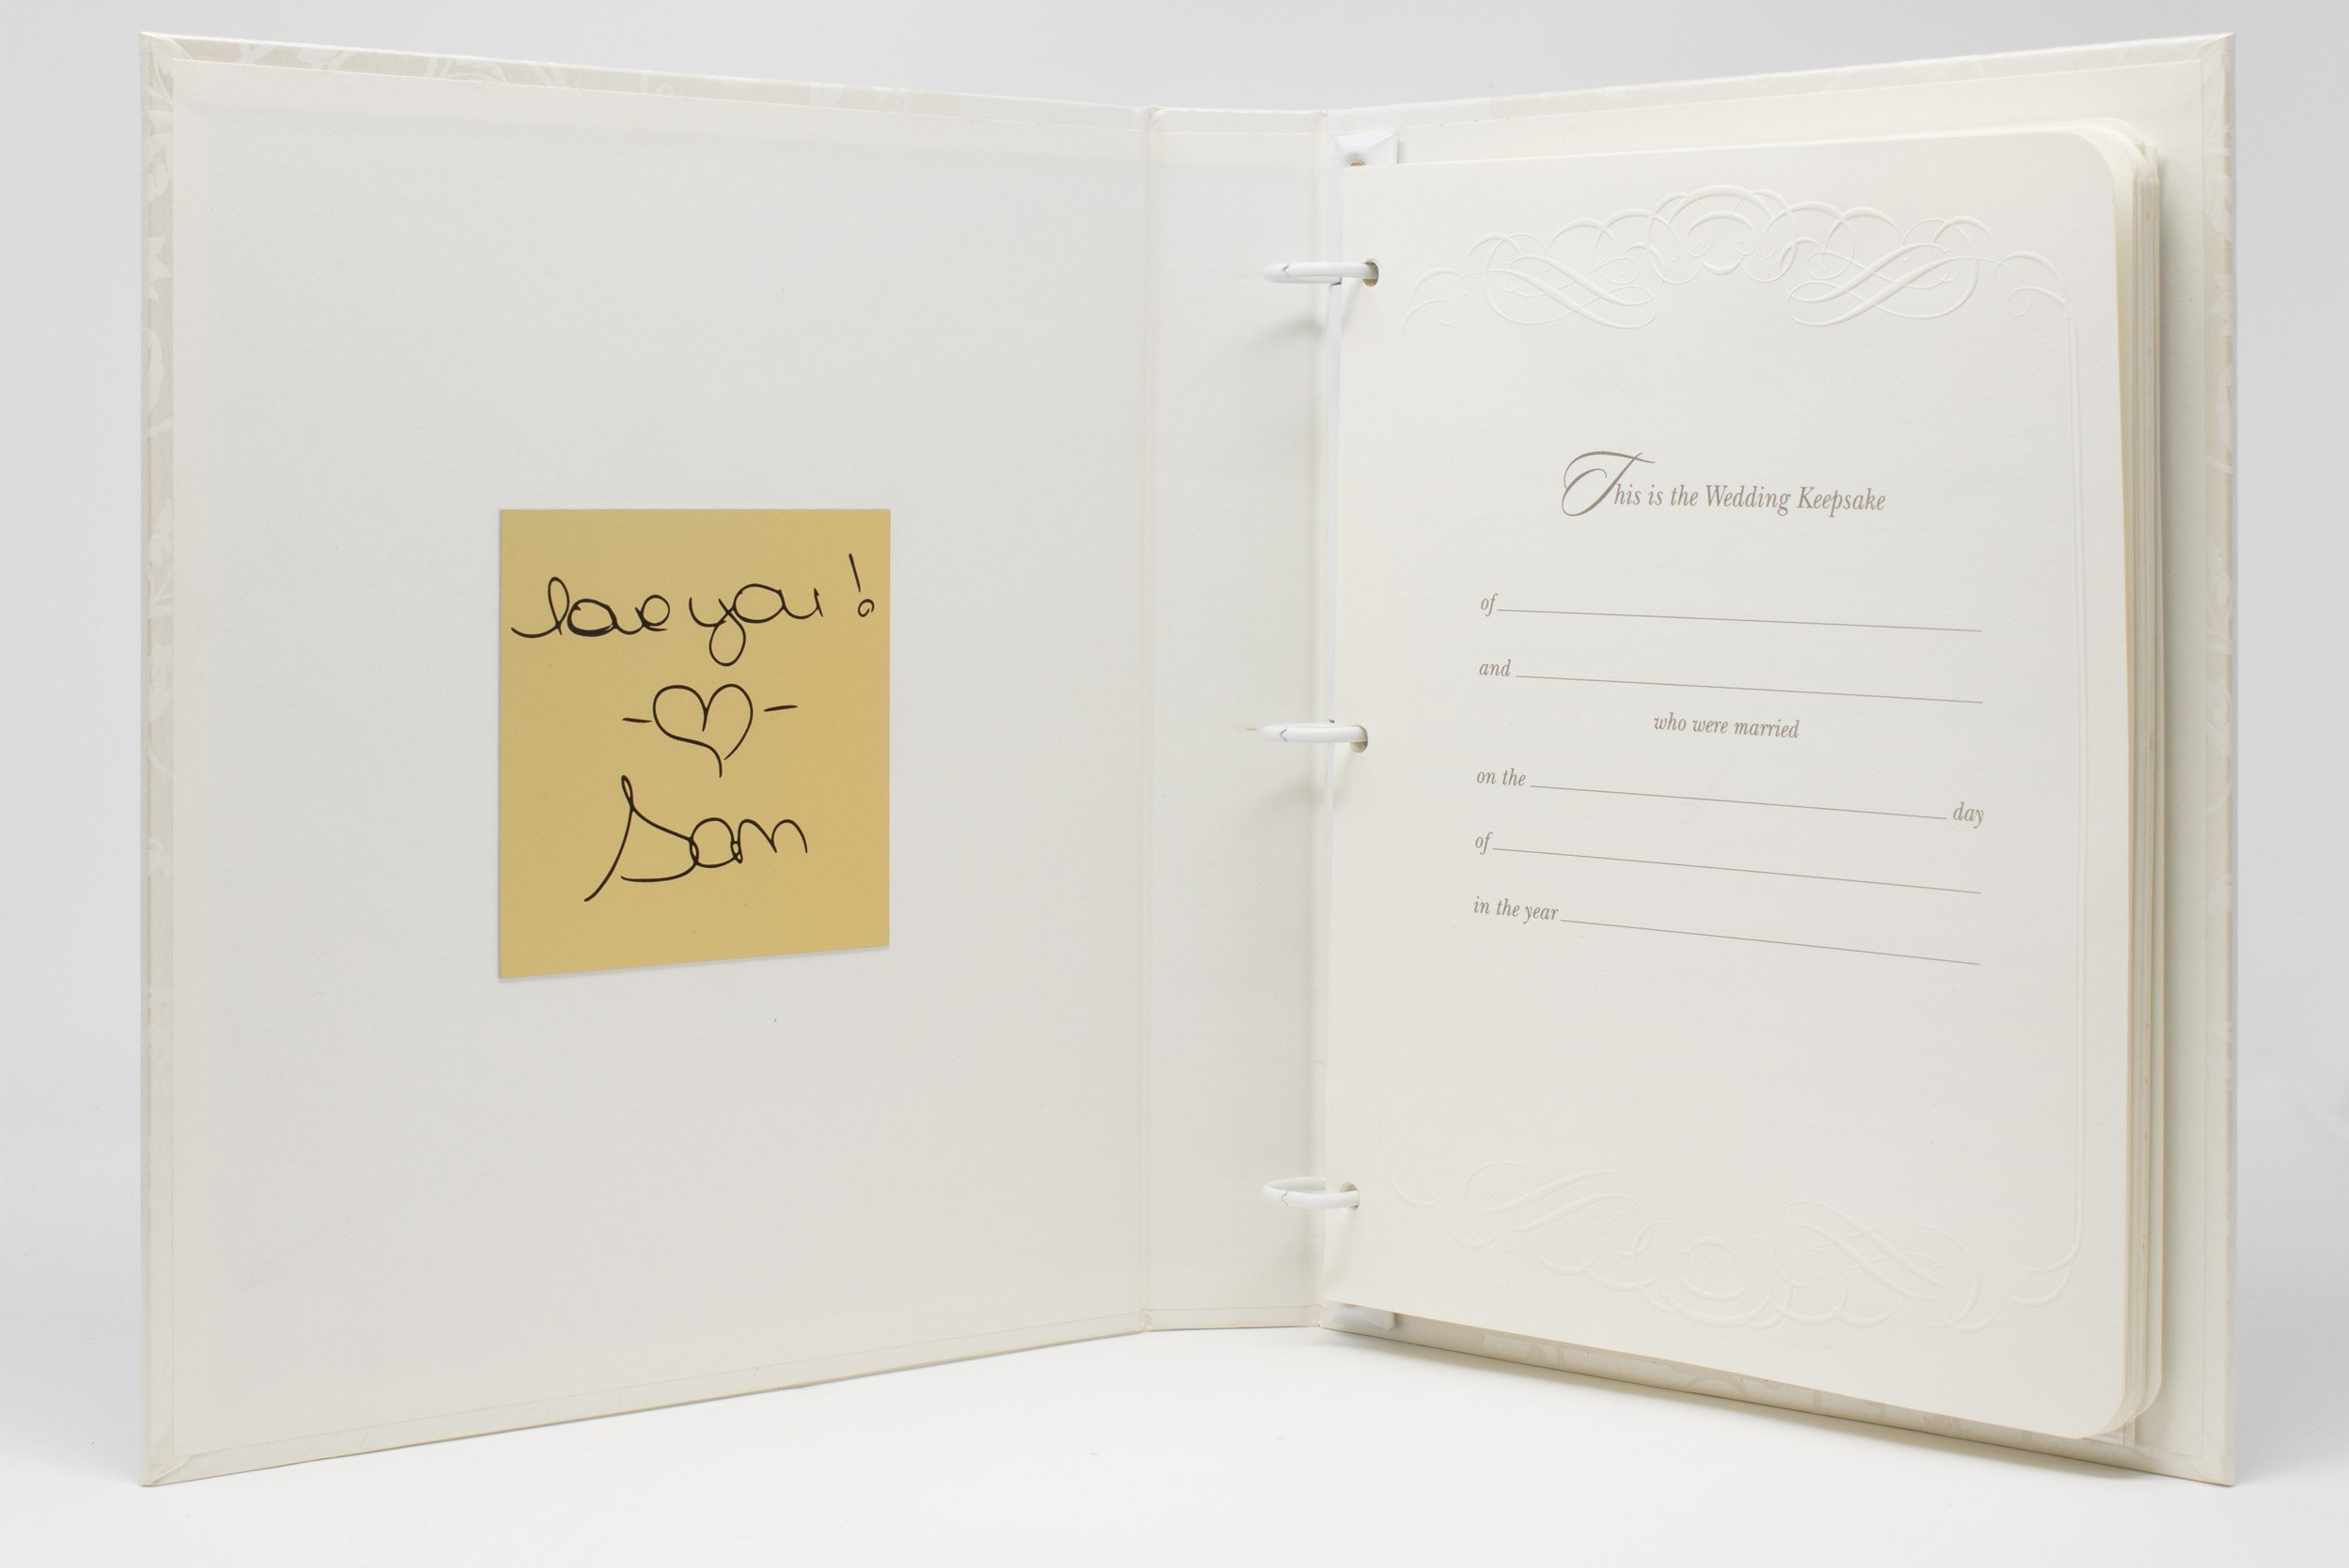 Handwriting, Permanently Engraved to Metal Plate, Affixed to Wedding Memory Book